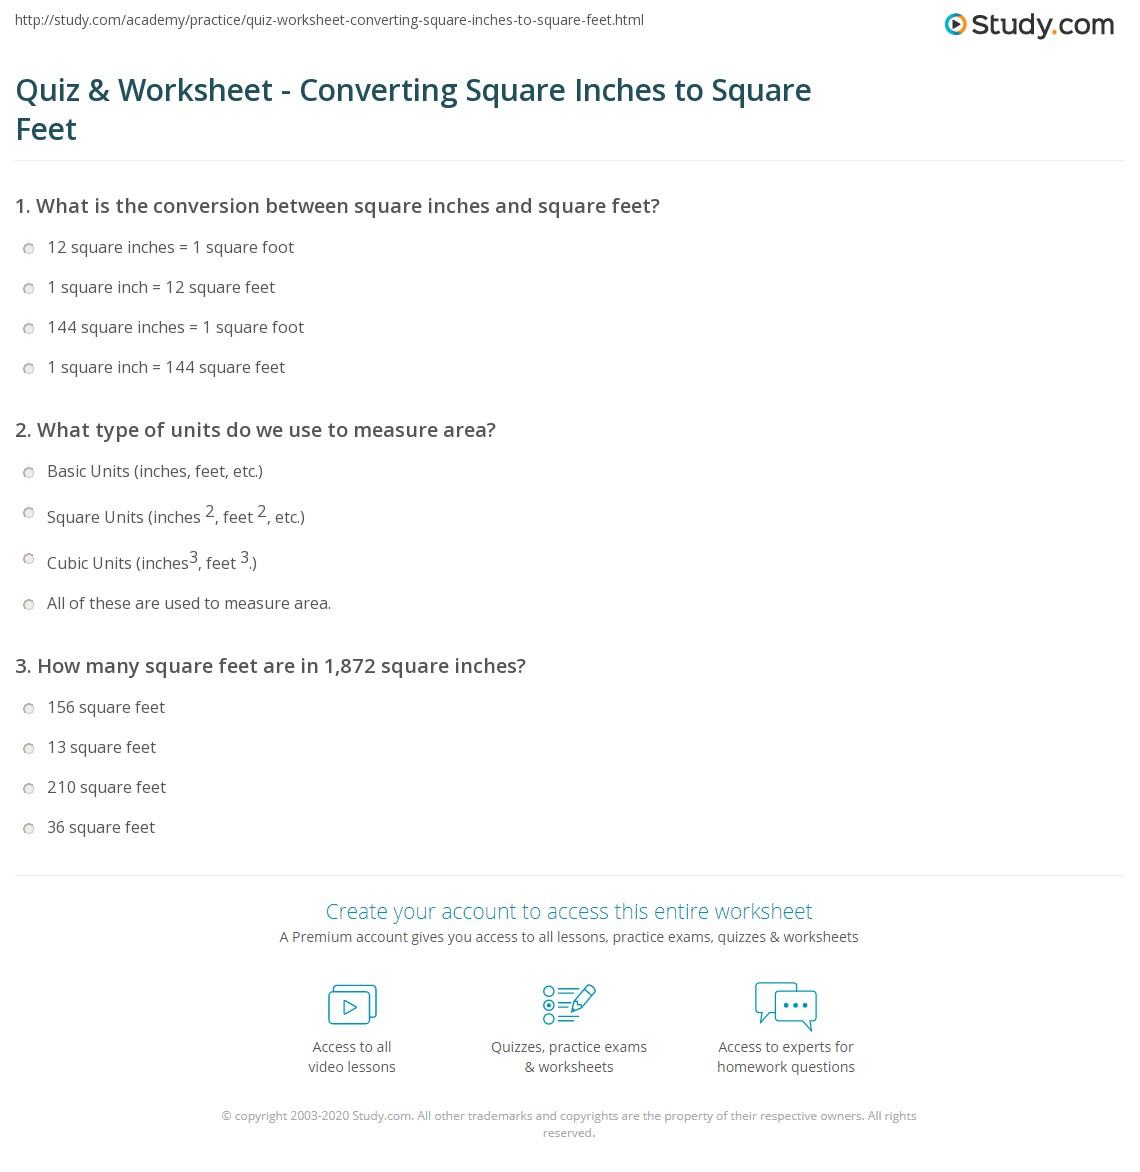 quiz worksheet converting square inches to square feet. Black Bedroom Furniture Sets. Home Design Ideas